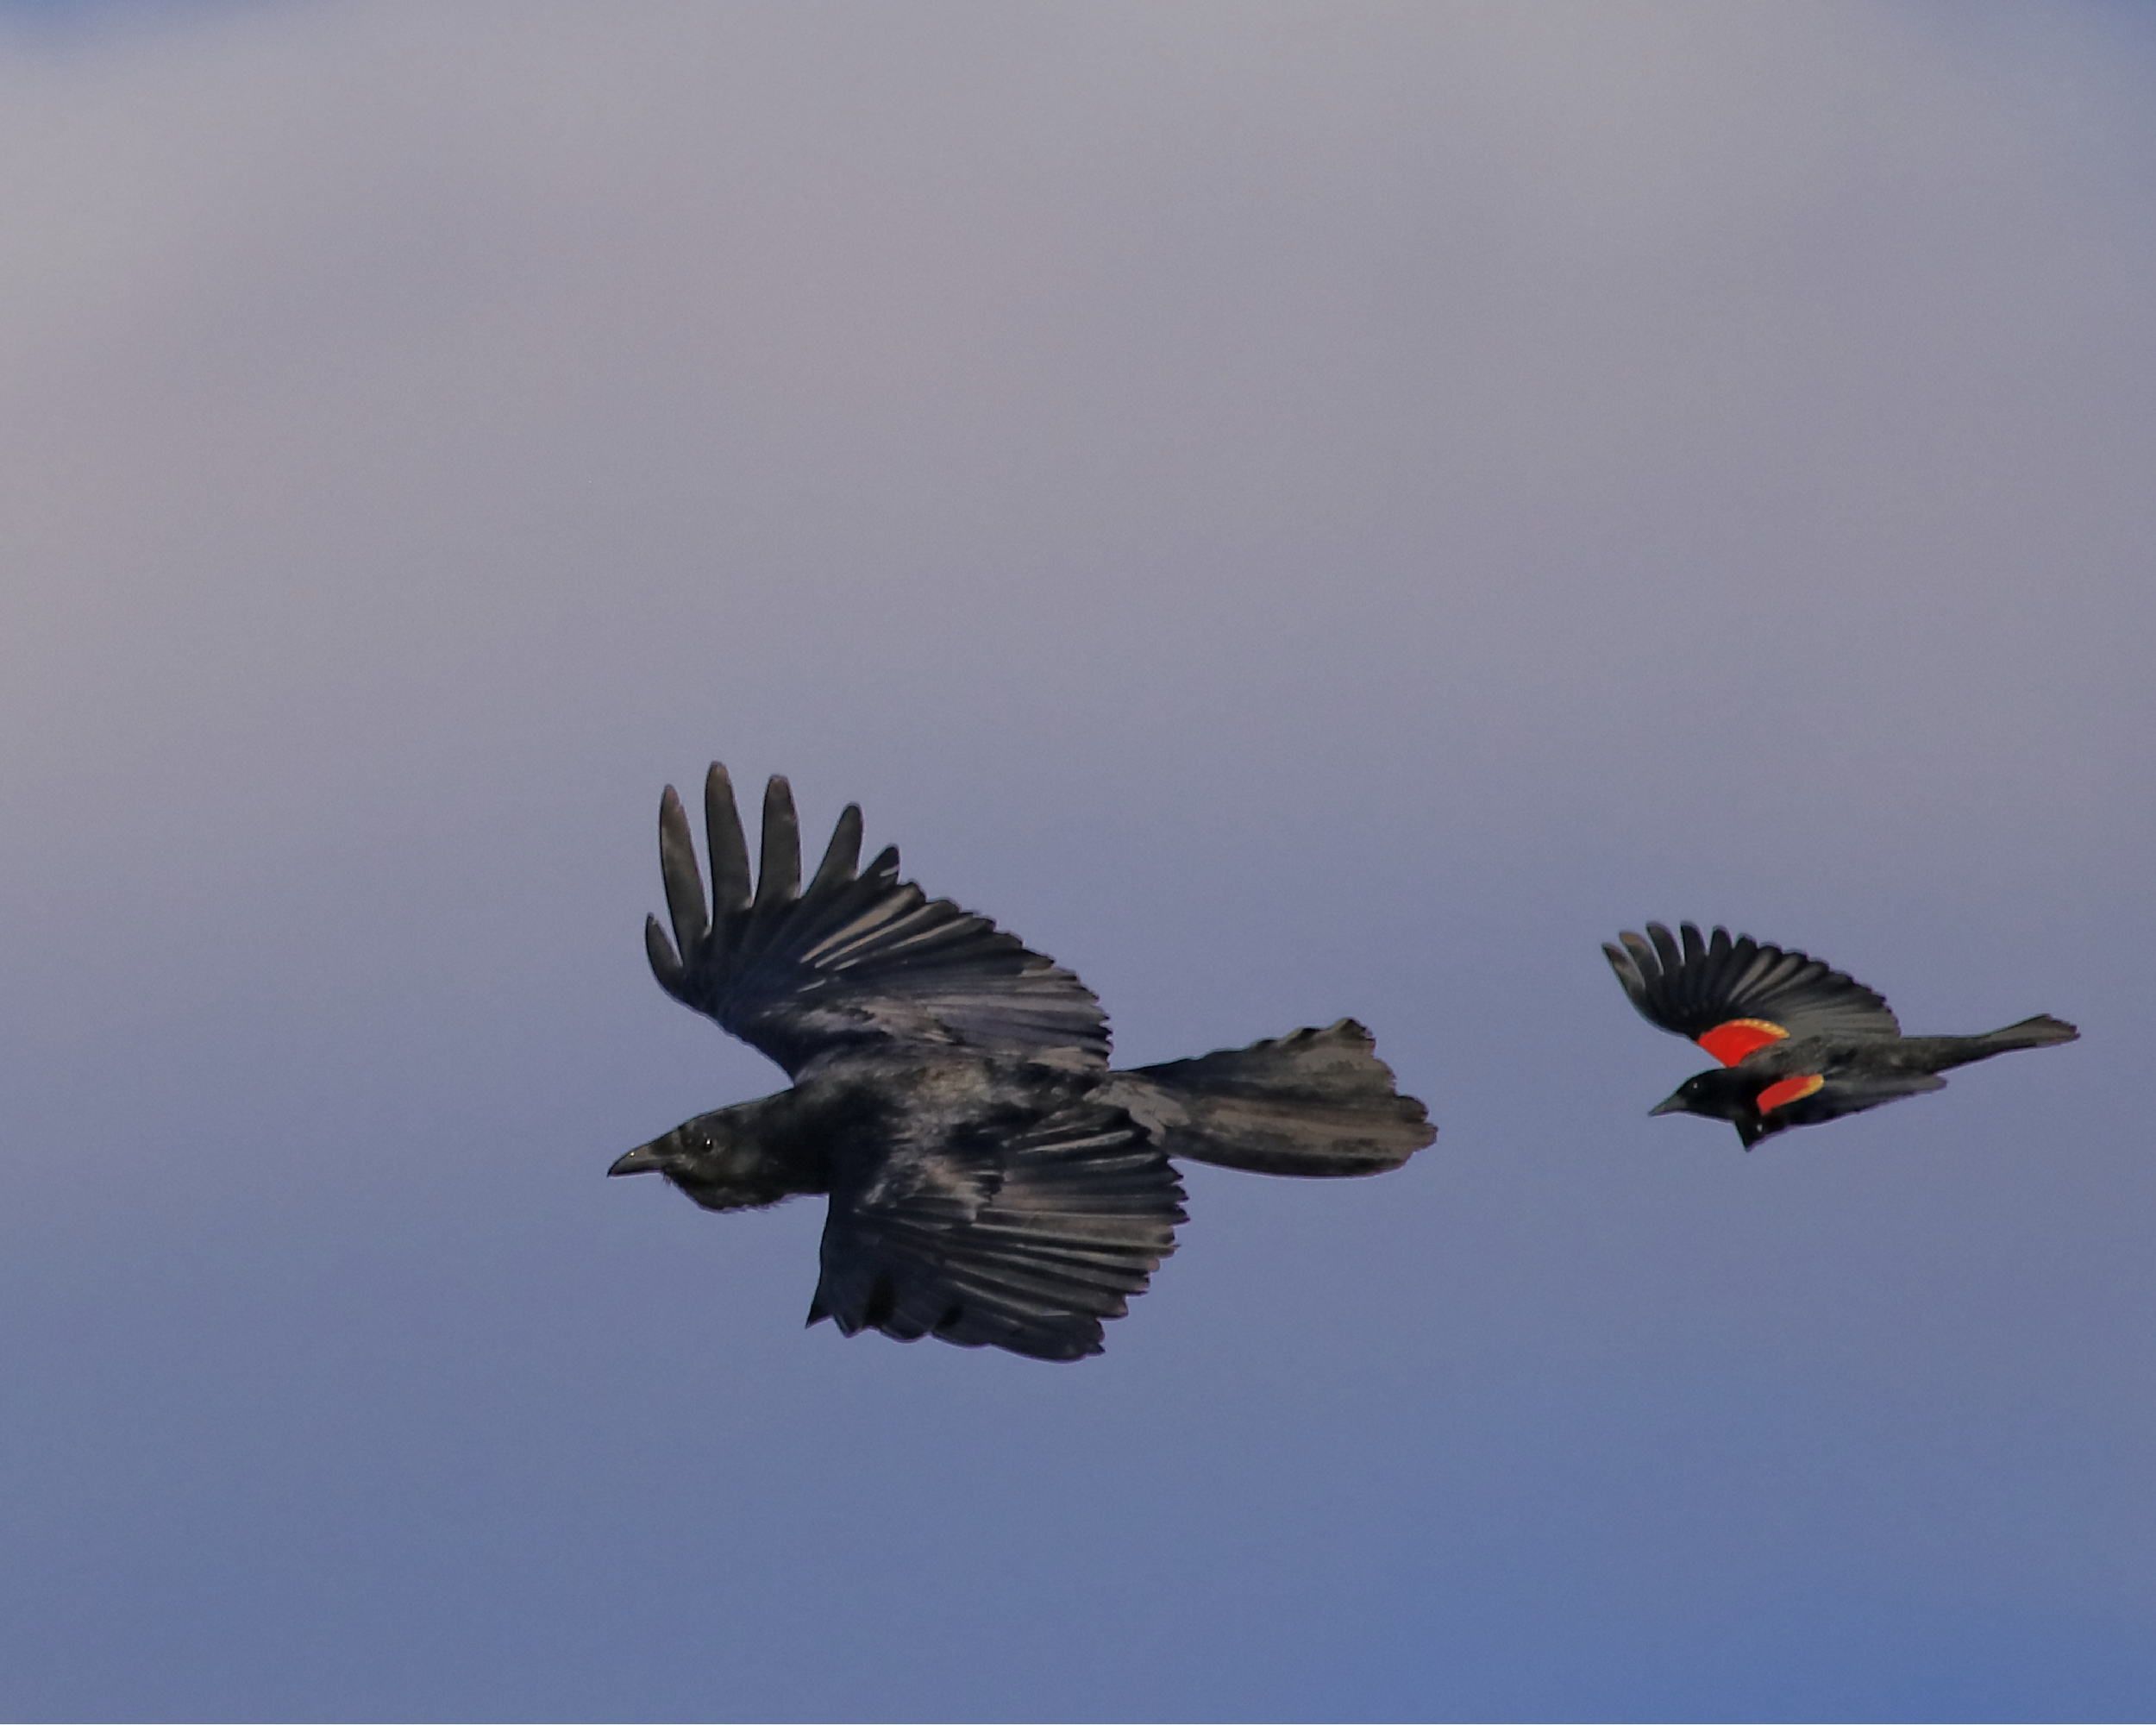 This Crow has a RedwingedBlackbird bogey on his tail feathers!